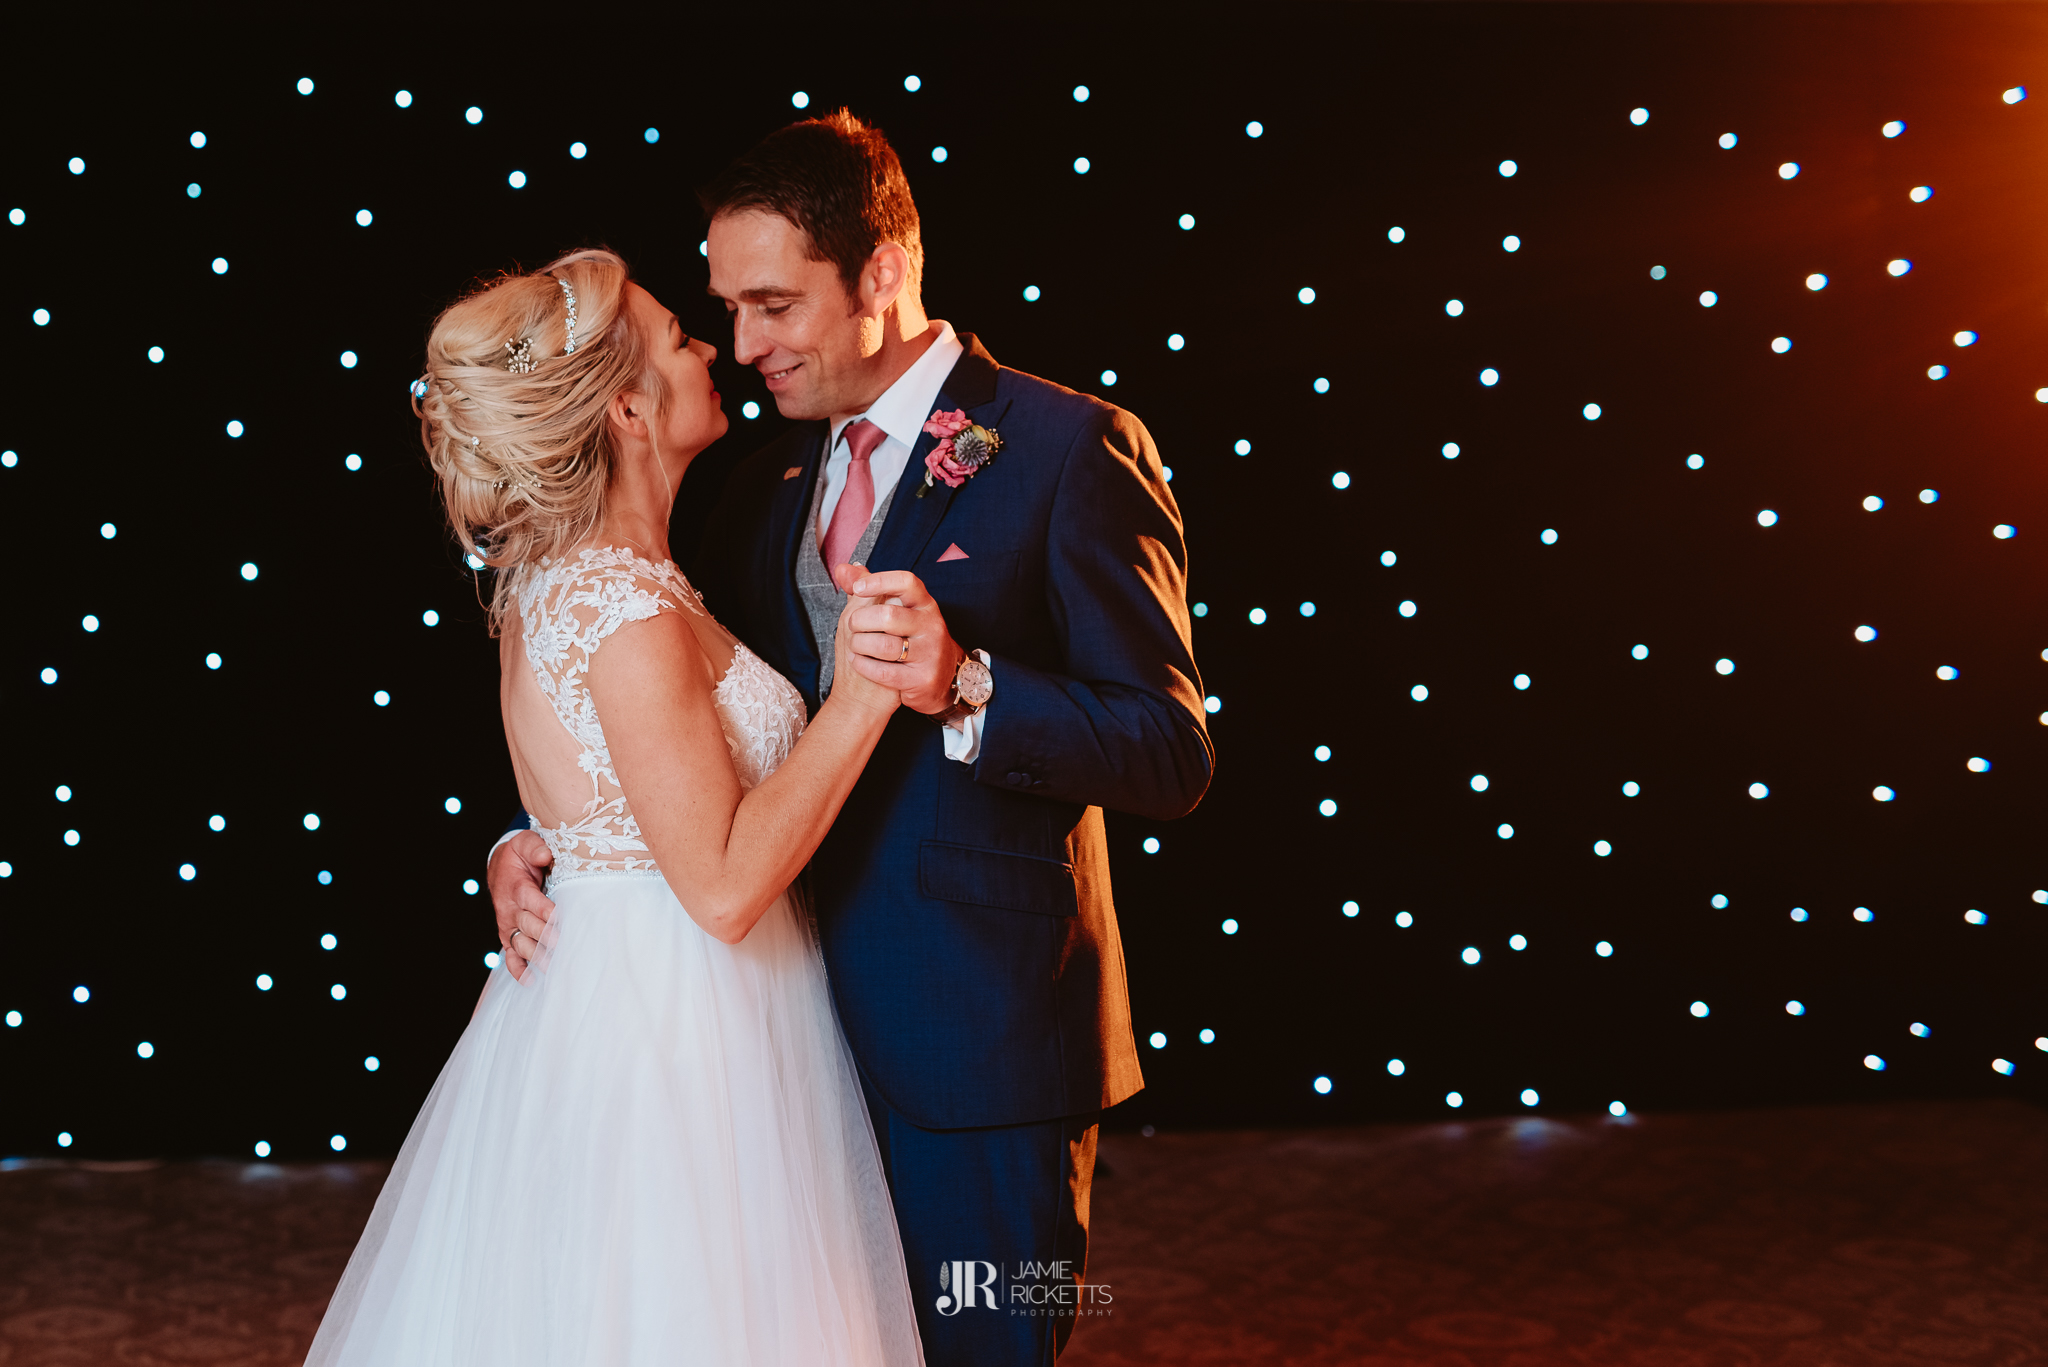 Wroxeter-Hotel-Wedding-Photography-In-Shropshire-By-Shropshire-Wedding-Photographer-Jamie-Ricketts-214.JPG